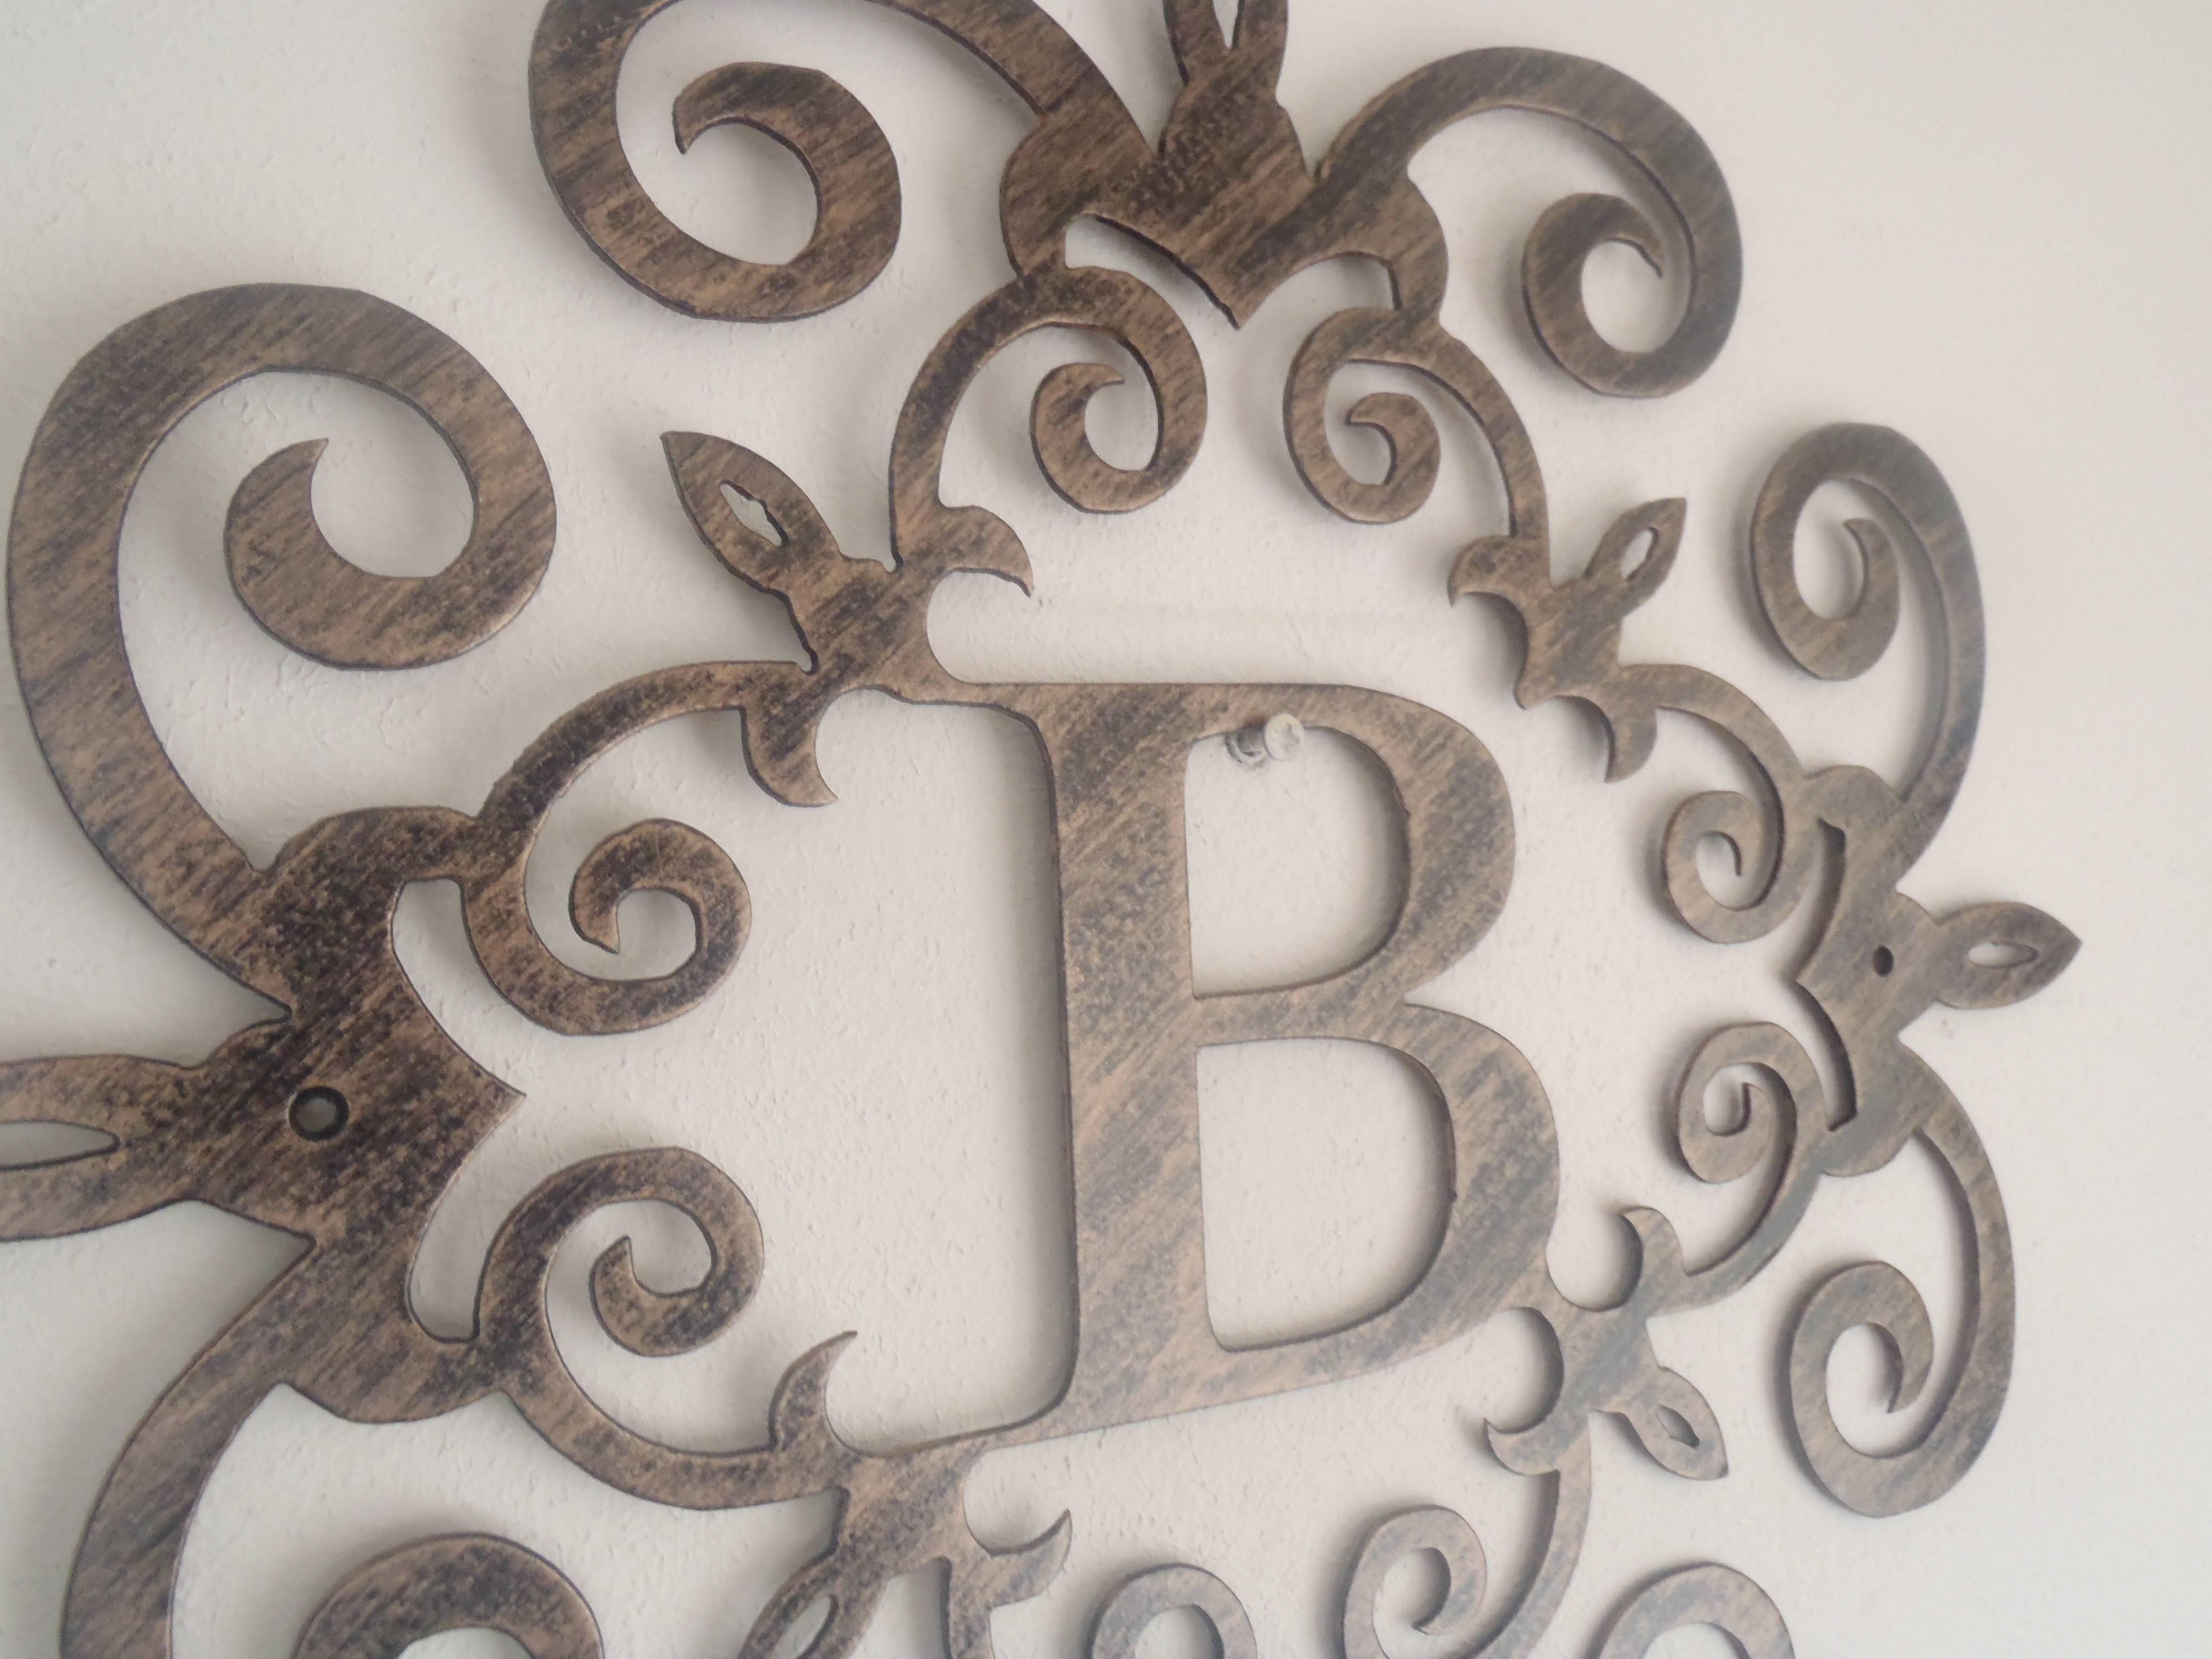 Wall Decor: Initial Letter B Wall Decor Ideas For Home Decor Metal Inside Most Recent Monogram Metal Wall Art (View 20 of 20)